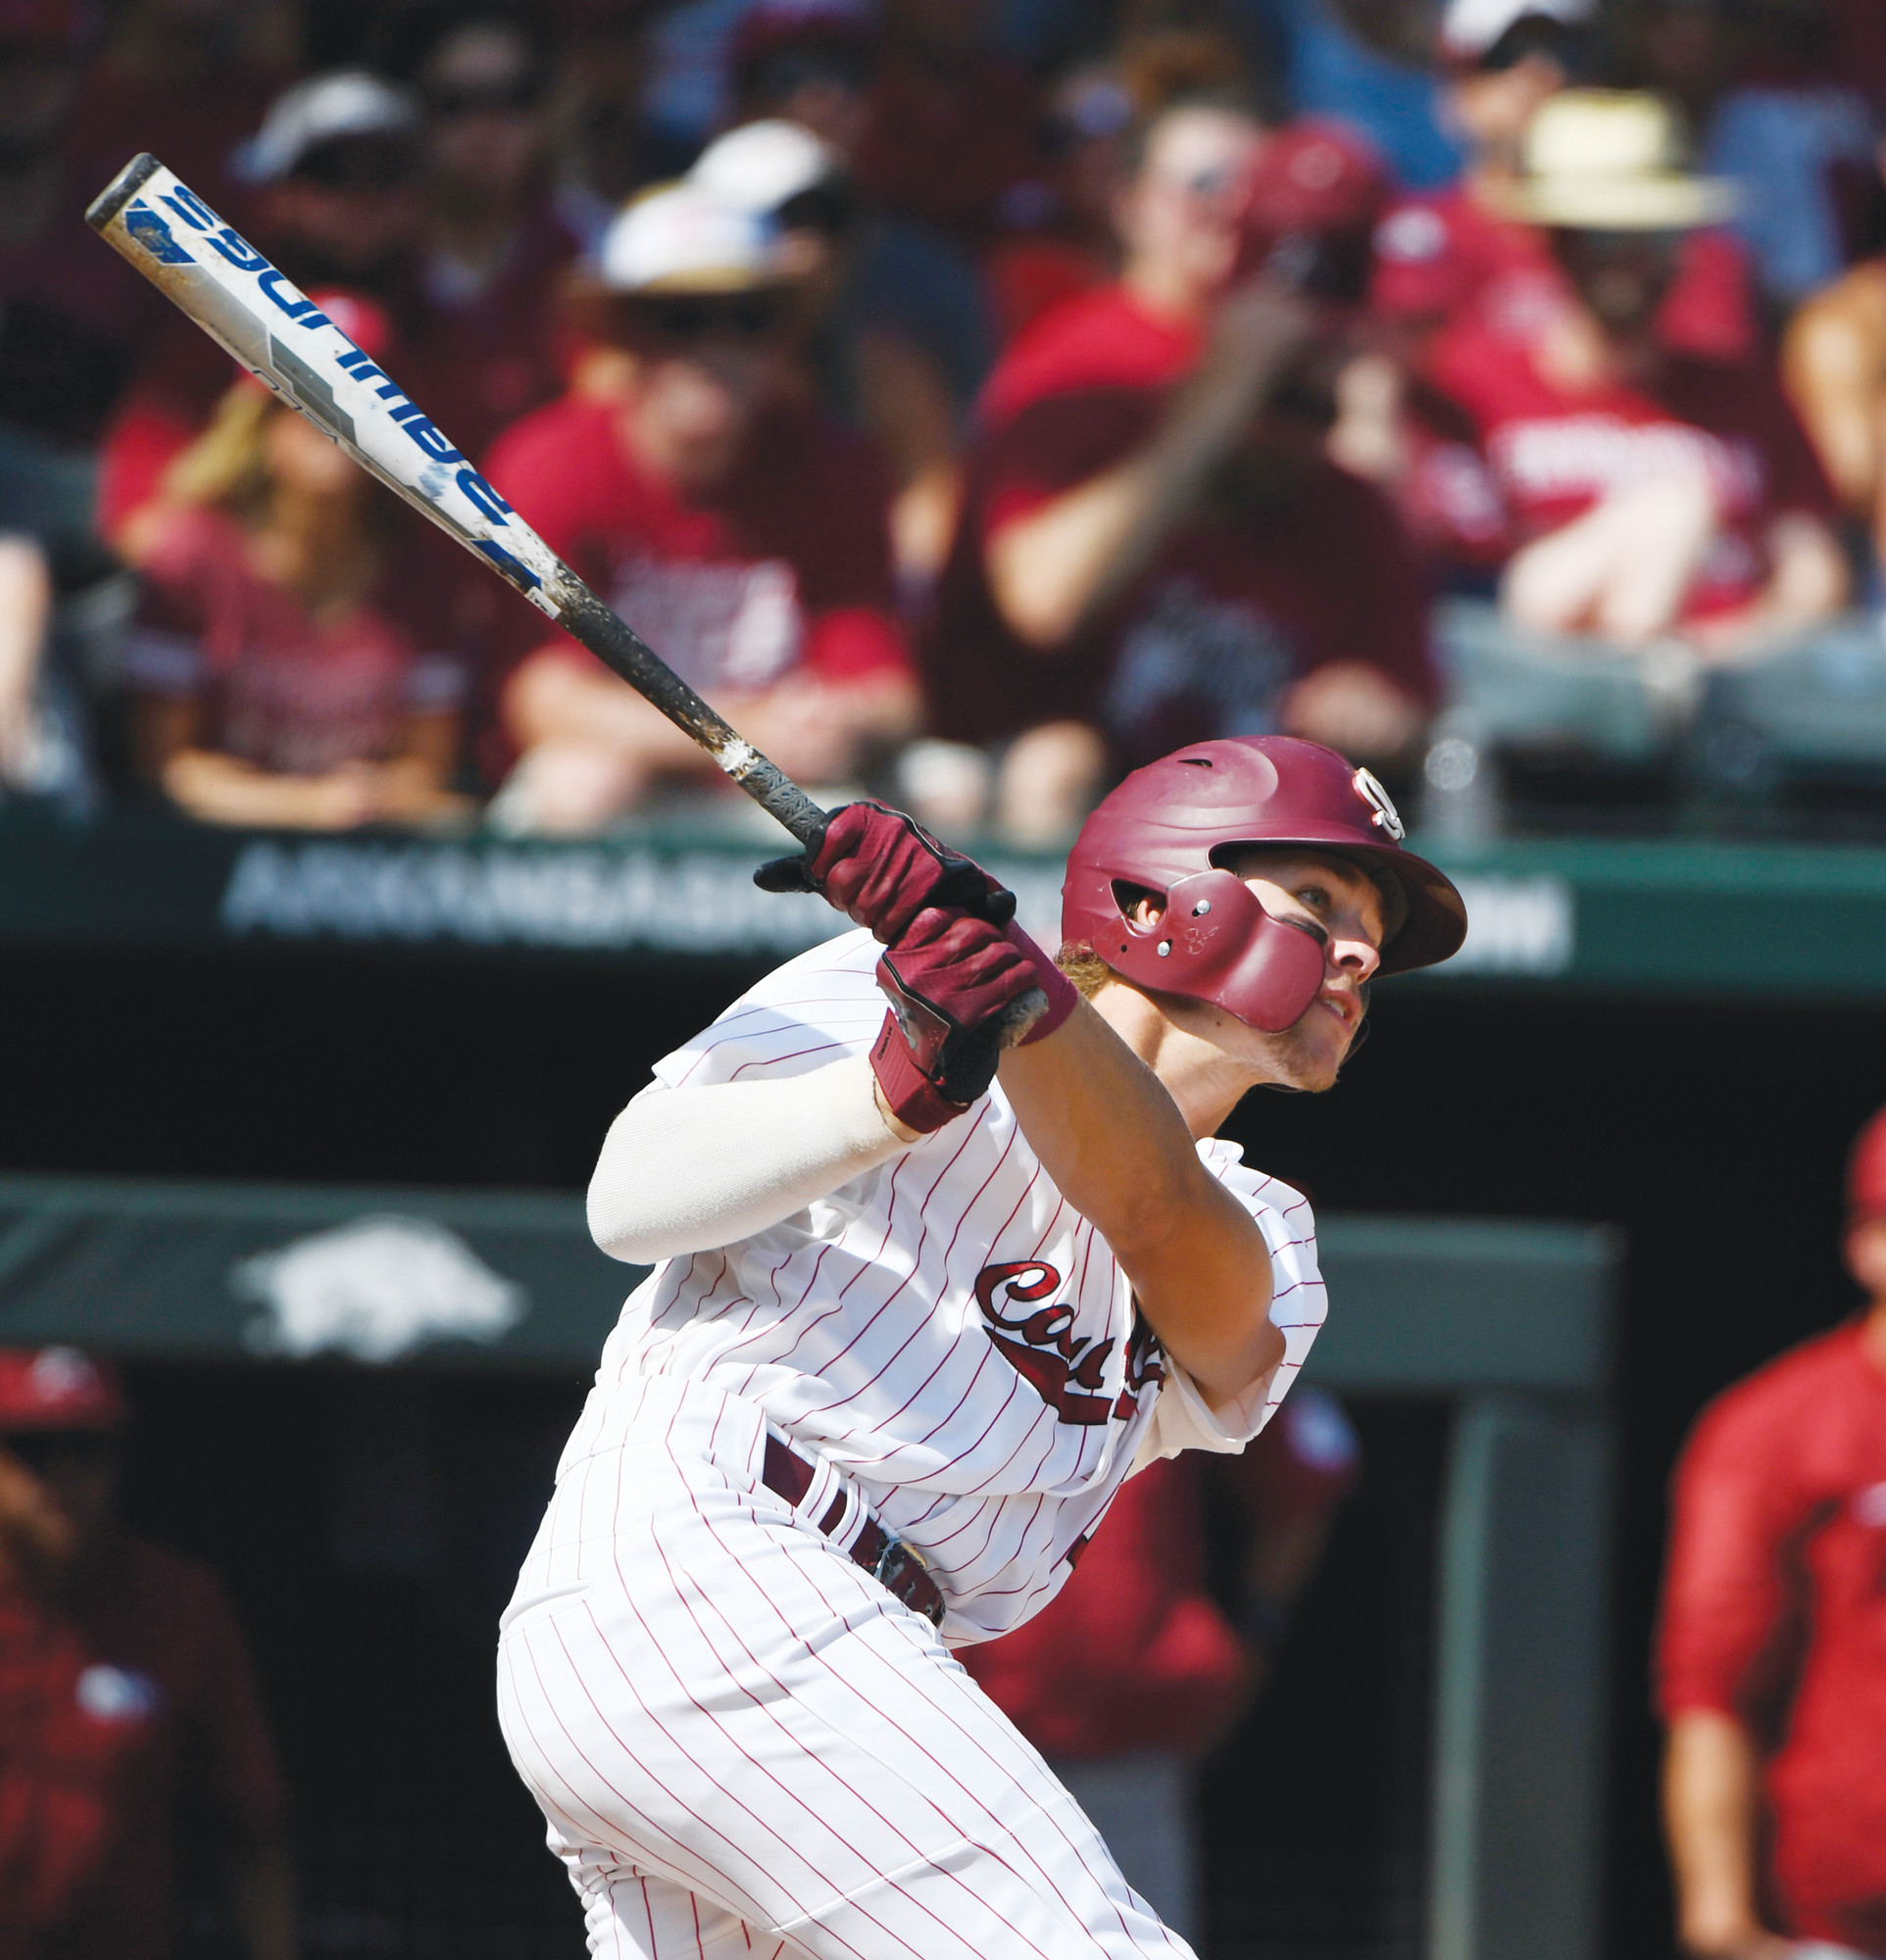 South Carolina's LT Tolbert (11) watches the ball after hitting a grand slam home run against Arkansas in the fifth inning of their NCAA baseball tournament super regional game in Fayetteville, Arkansas, on Sunday.